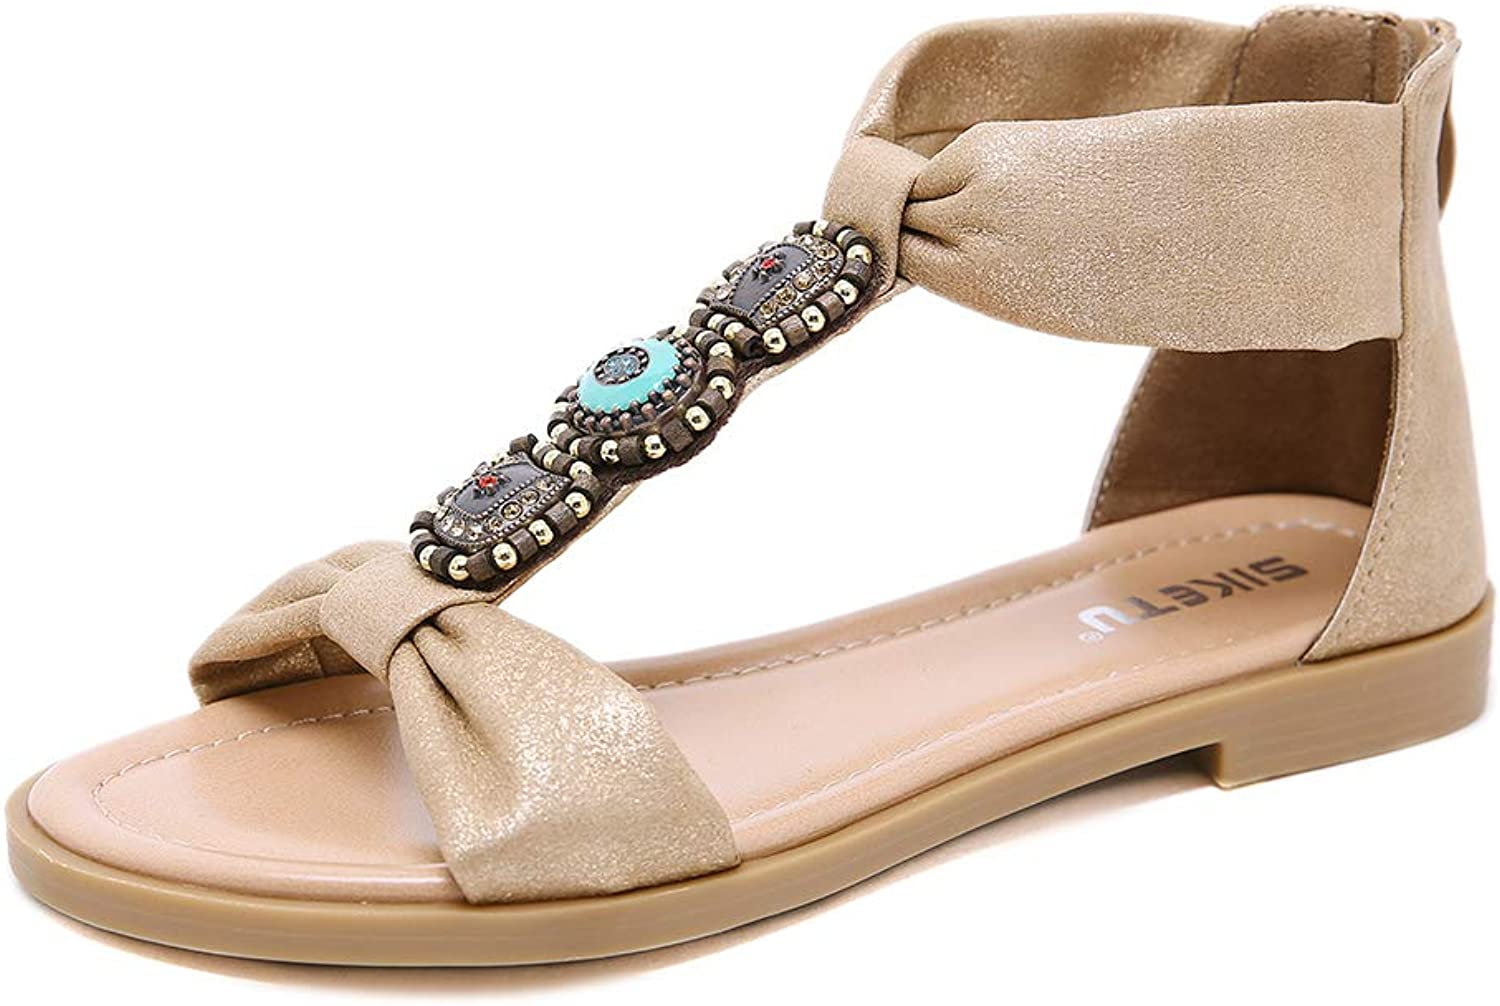 AGOWOO Womens Vintage Jeweled Sandals, Strap Flat Zipper, Sandles